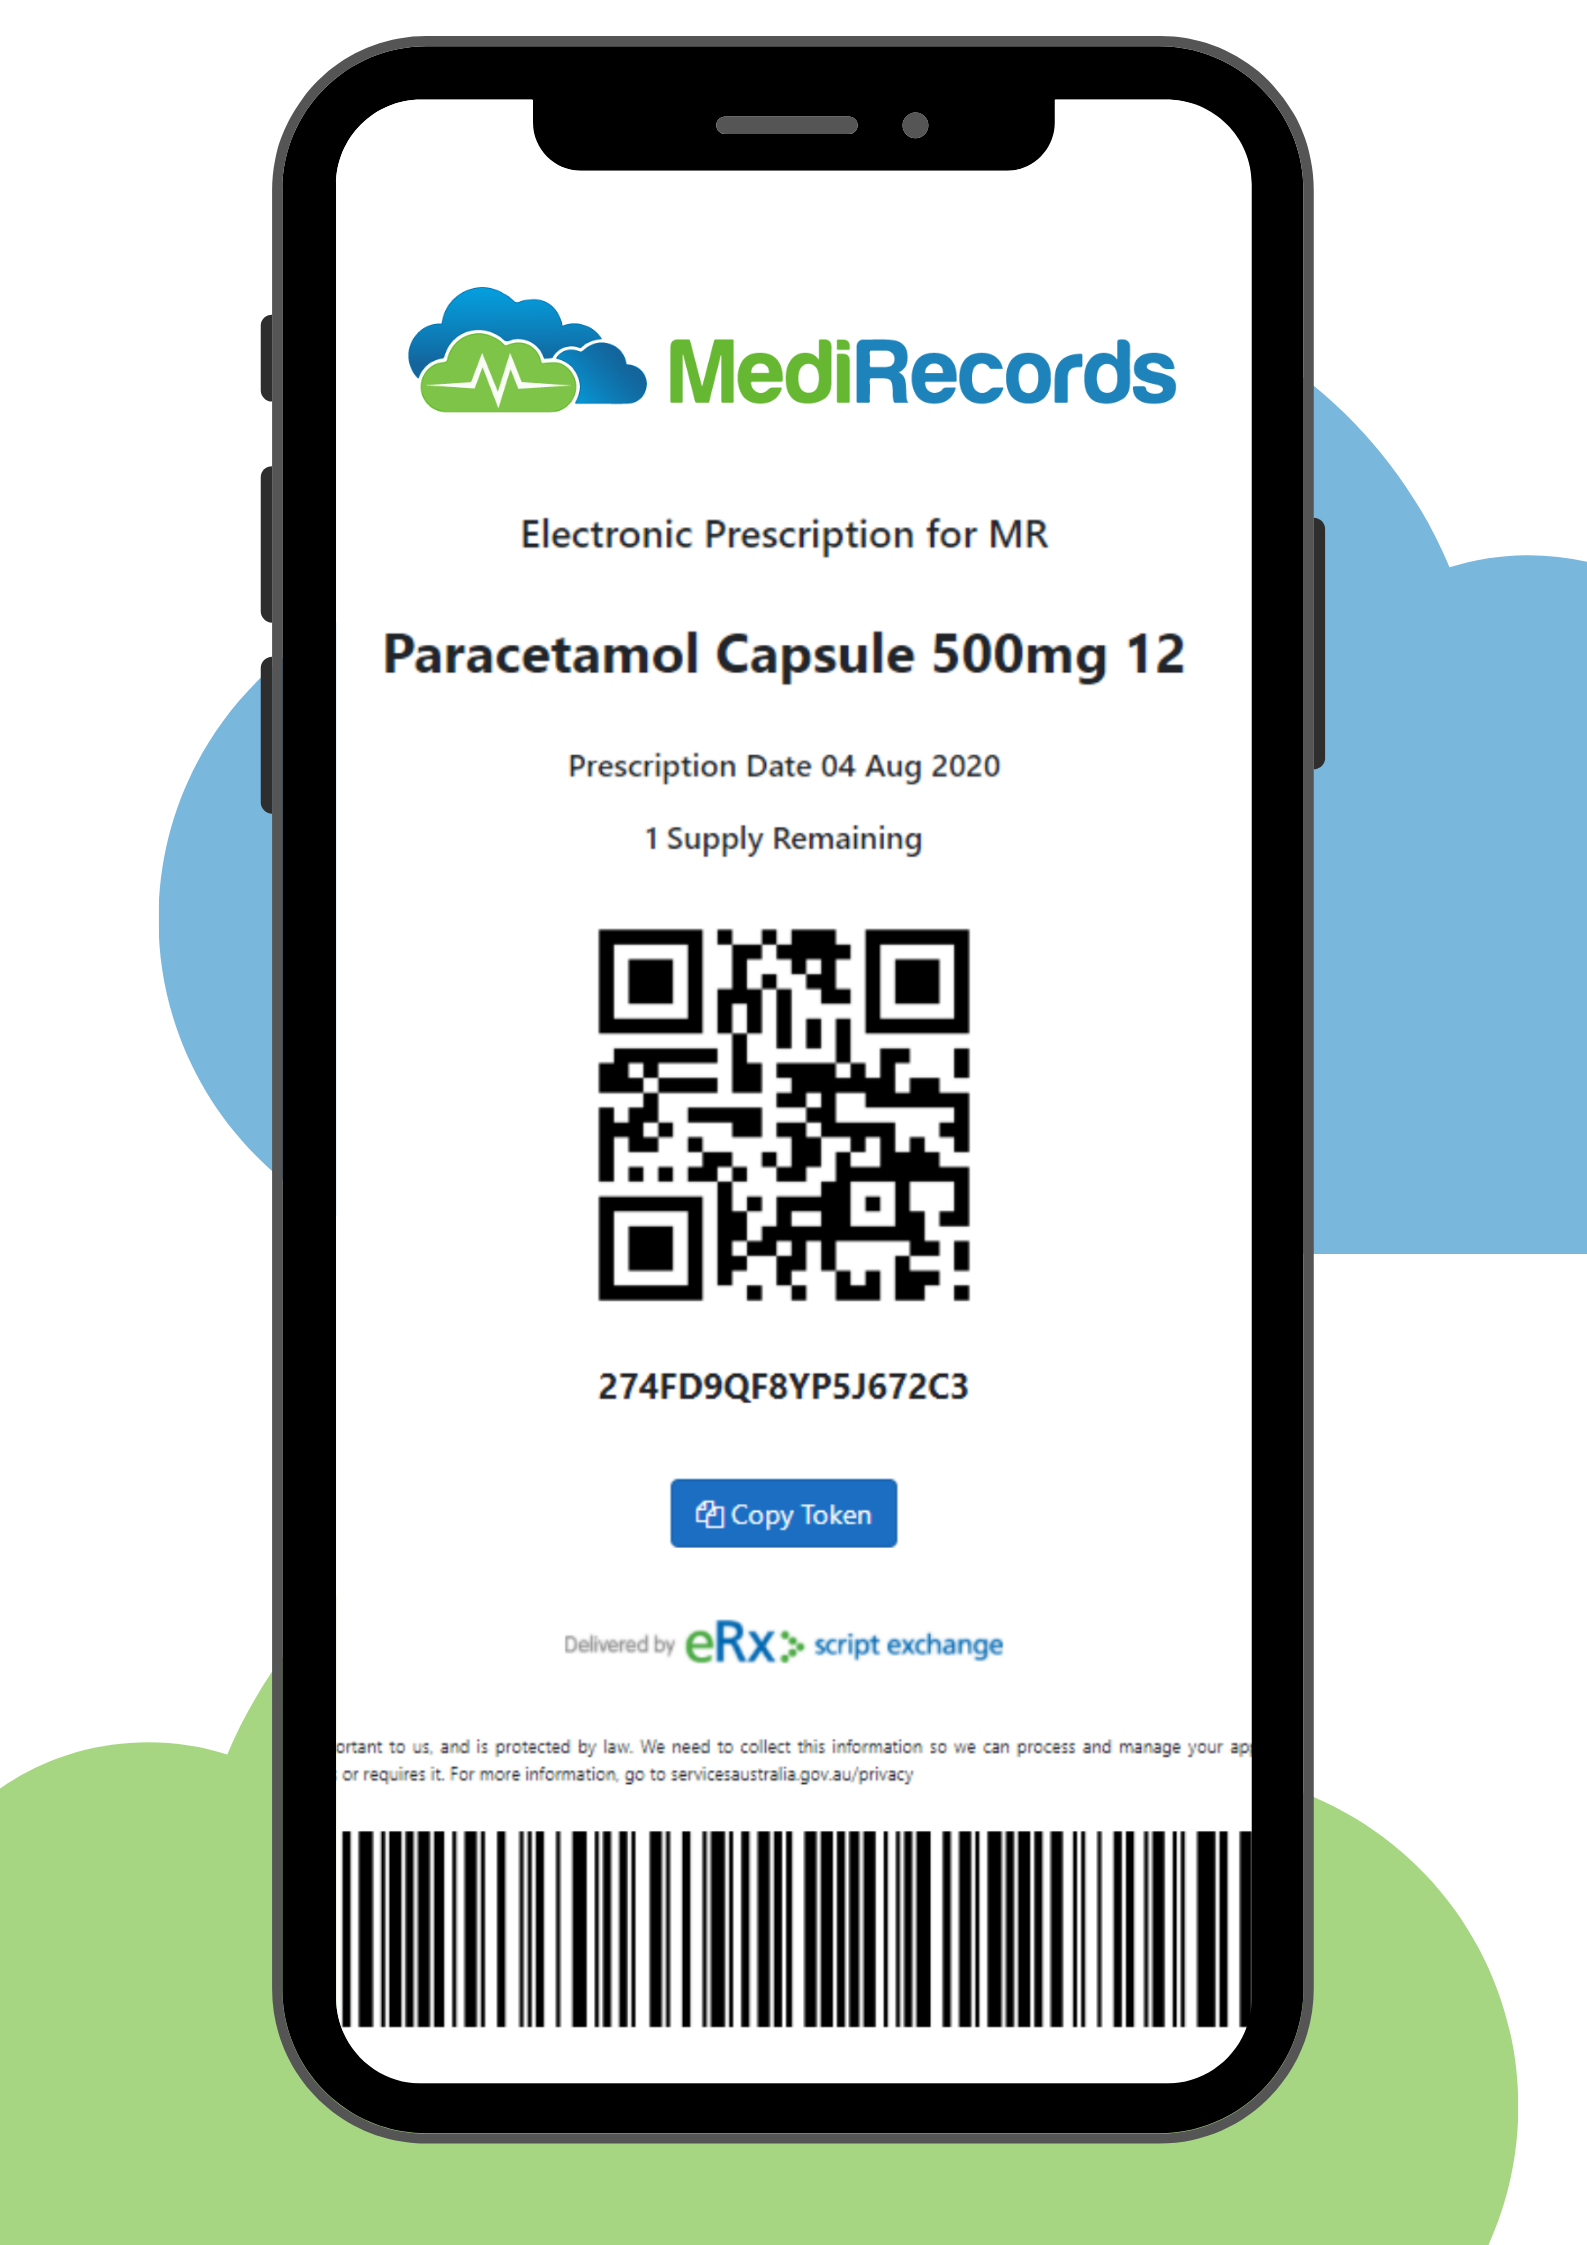 ePrescribing Token on Phone